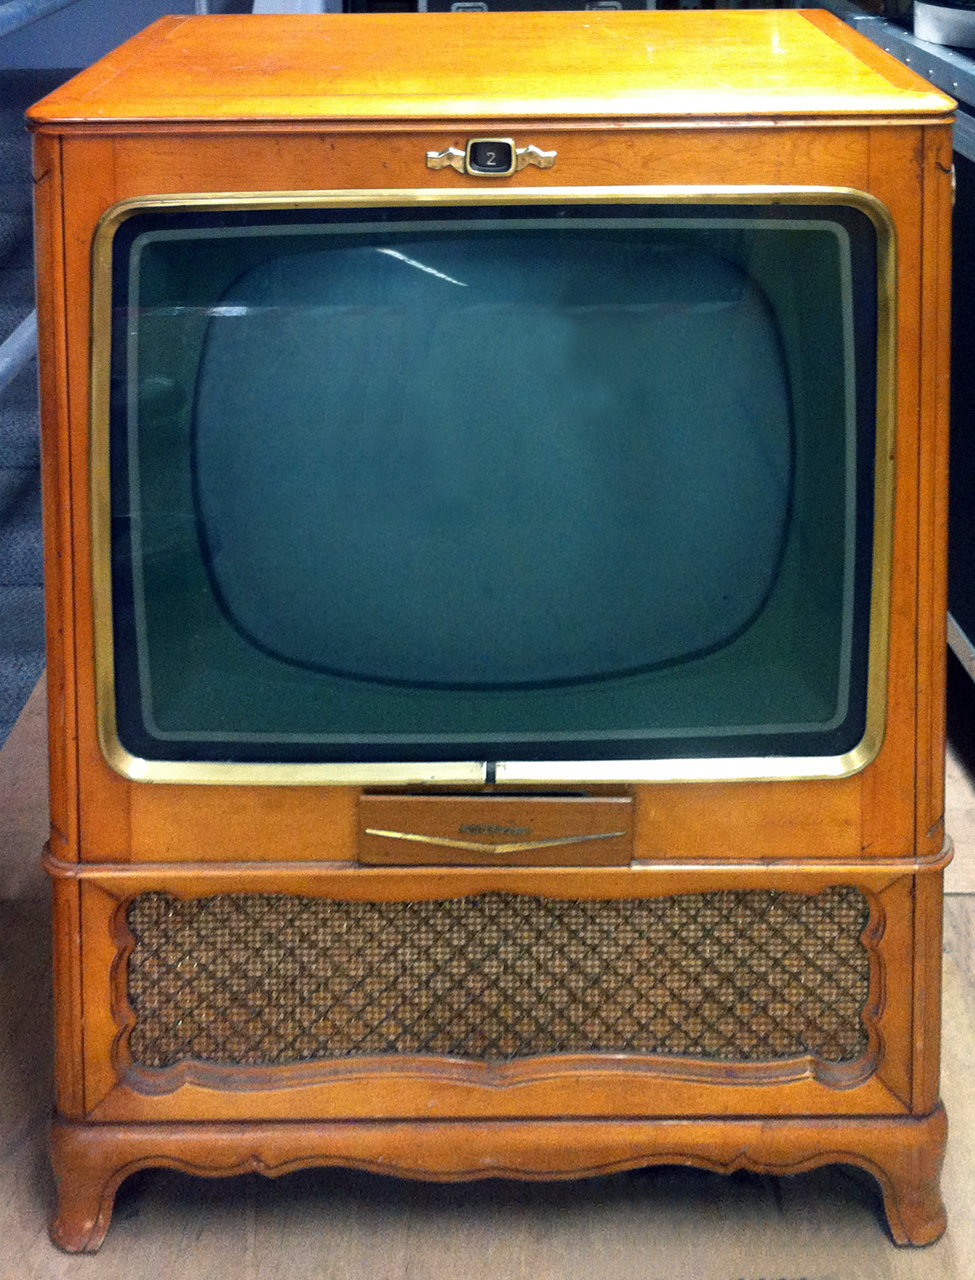 crt television archives digital